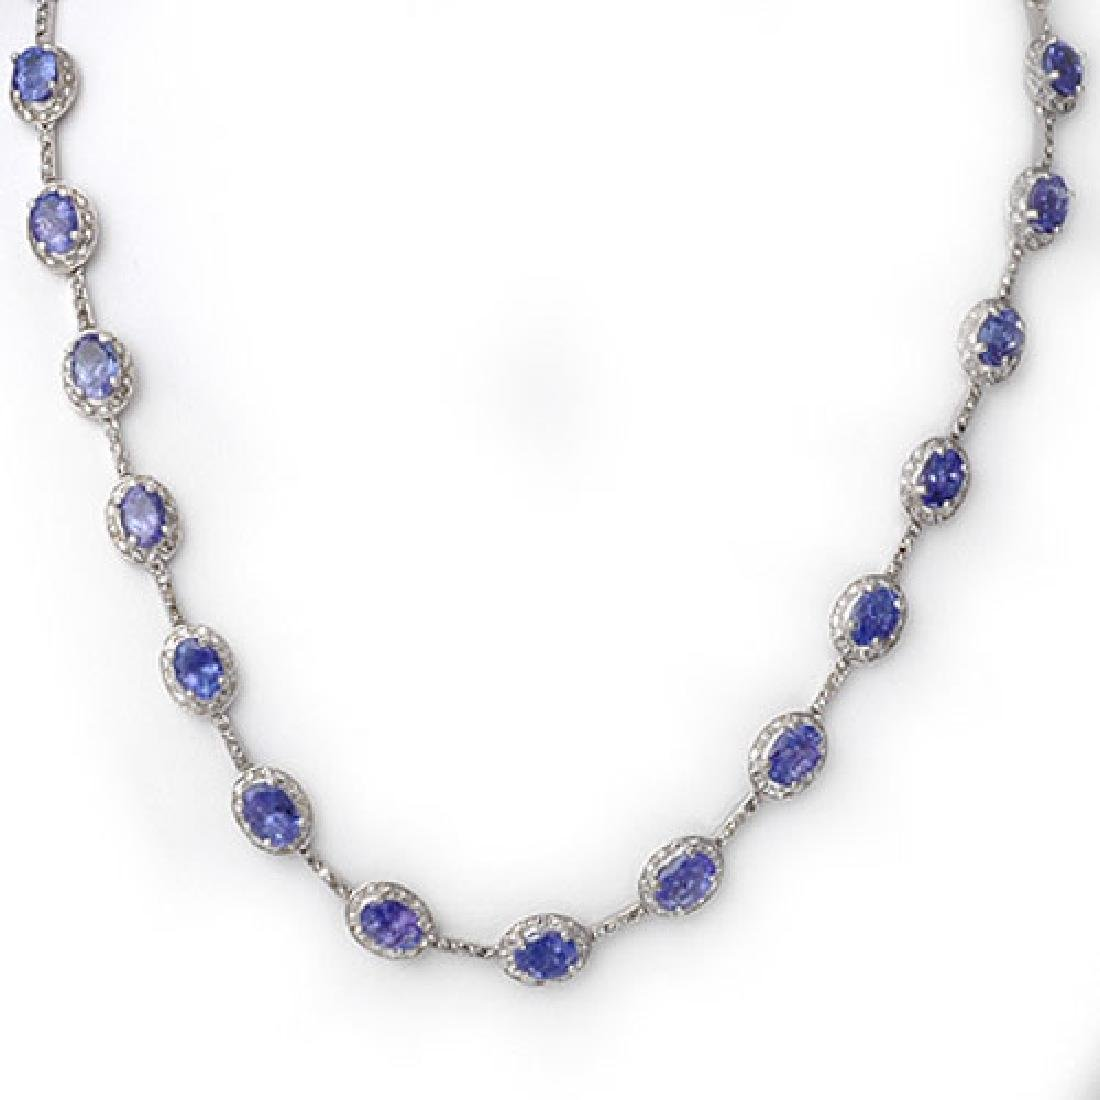 25.0 CTW Tanzanite & Diamond Necklace 10K White Gold